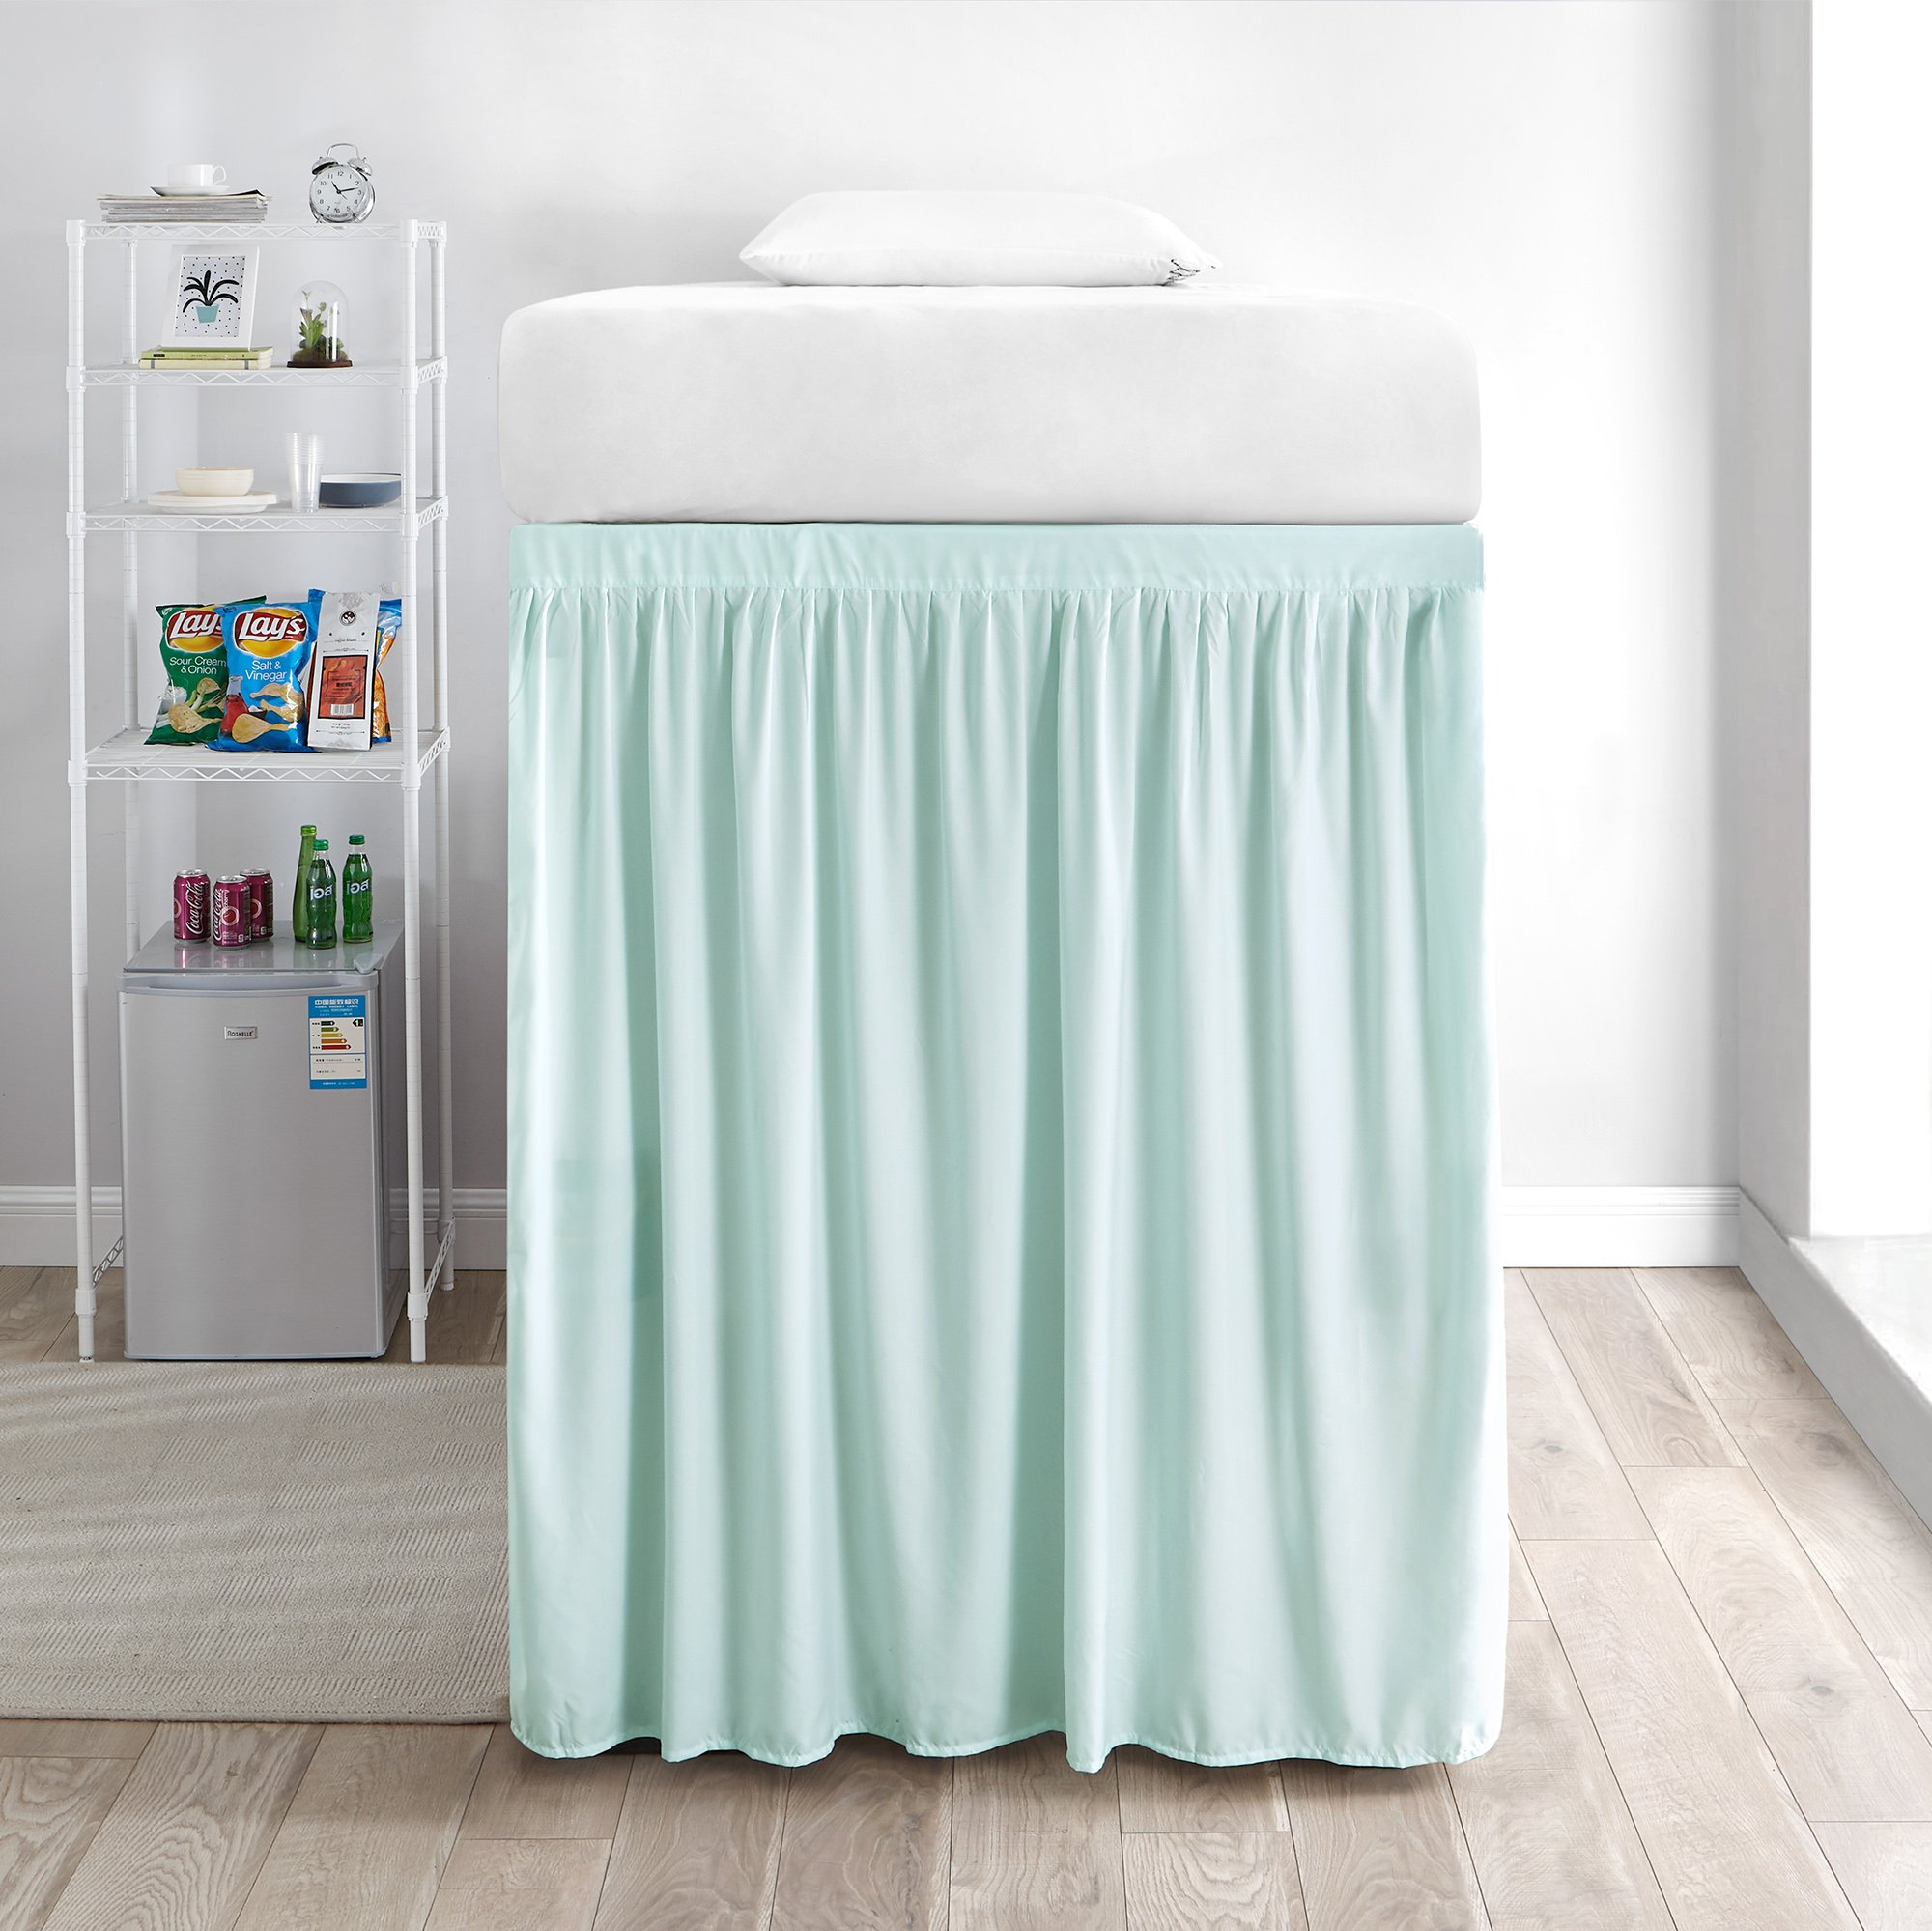 DormCo Extended Bed Skirt Twin XL (3 Panel Set) - Hint of Mint